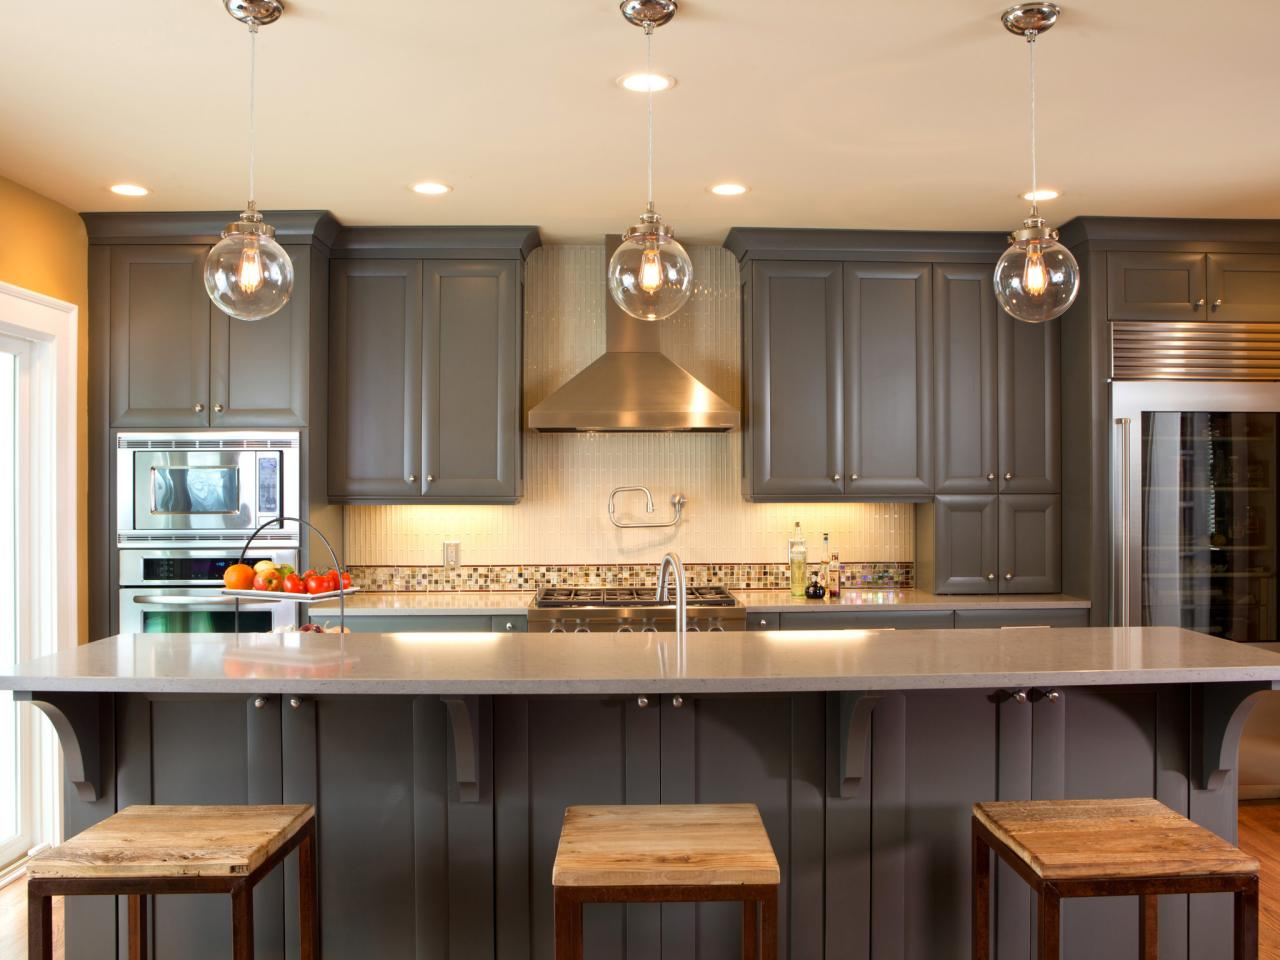 lovely I Want To Paint My Kitchen Cabinets #8: Ideas for Painting Kitchen Cabinets